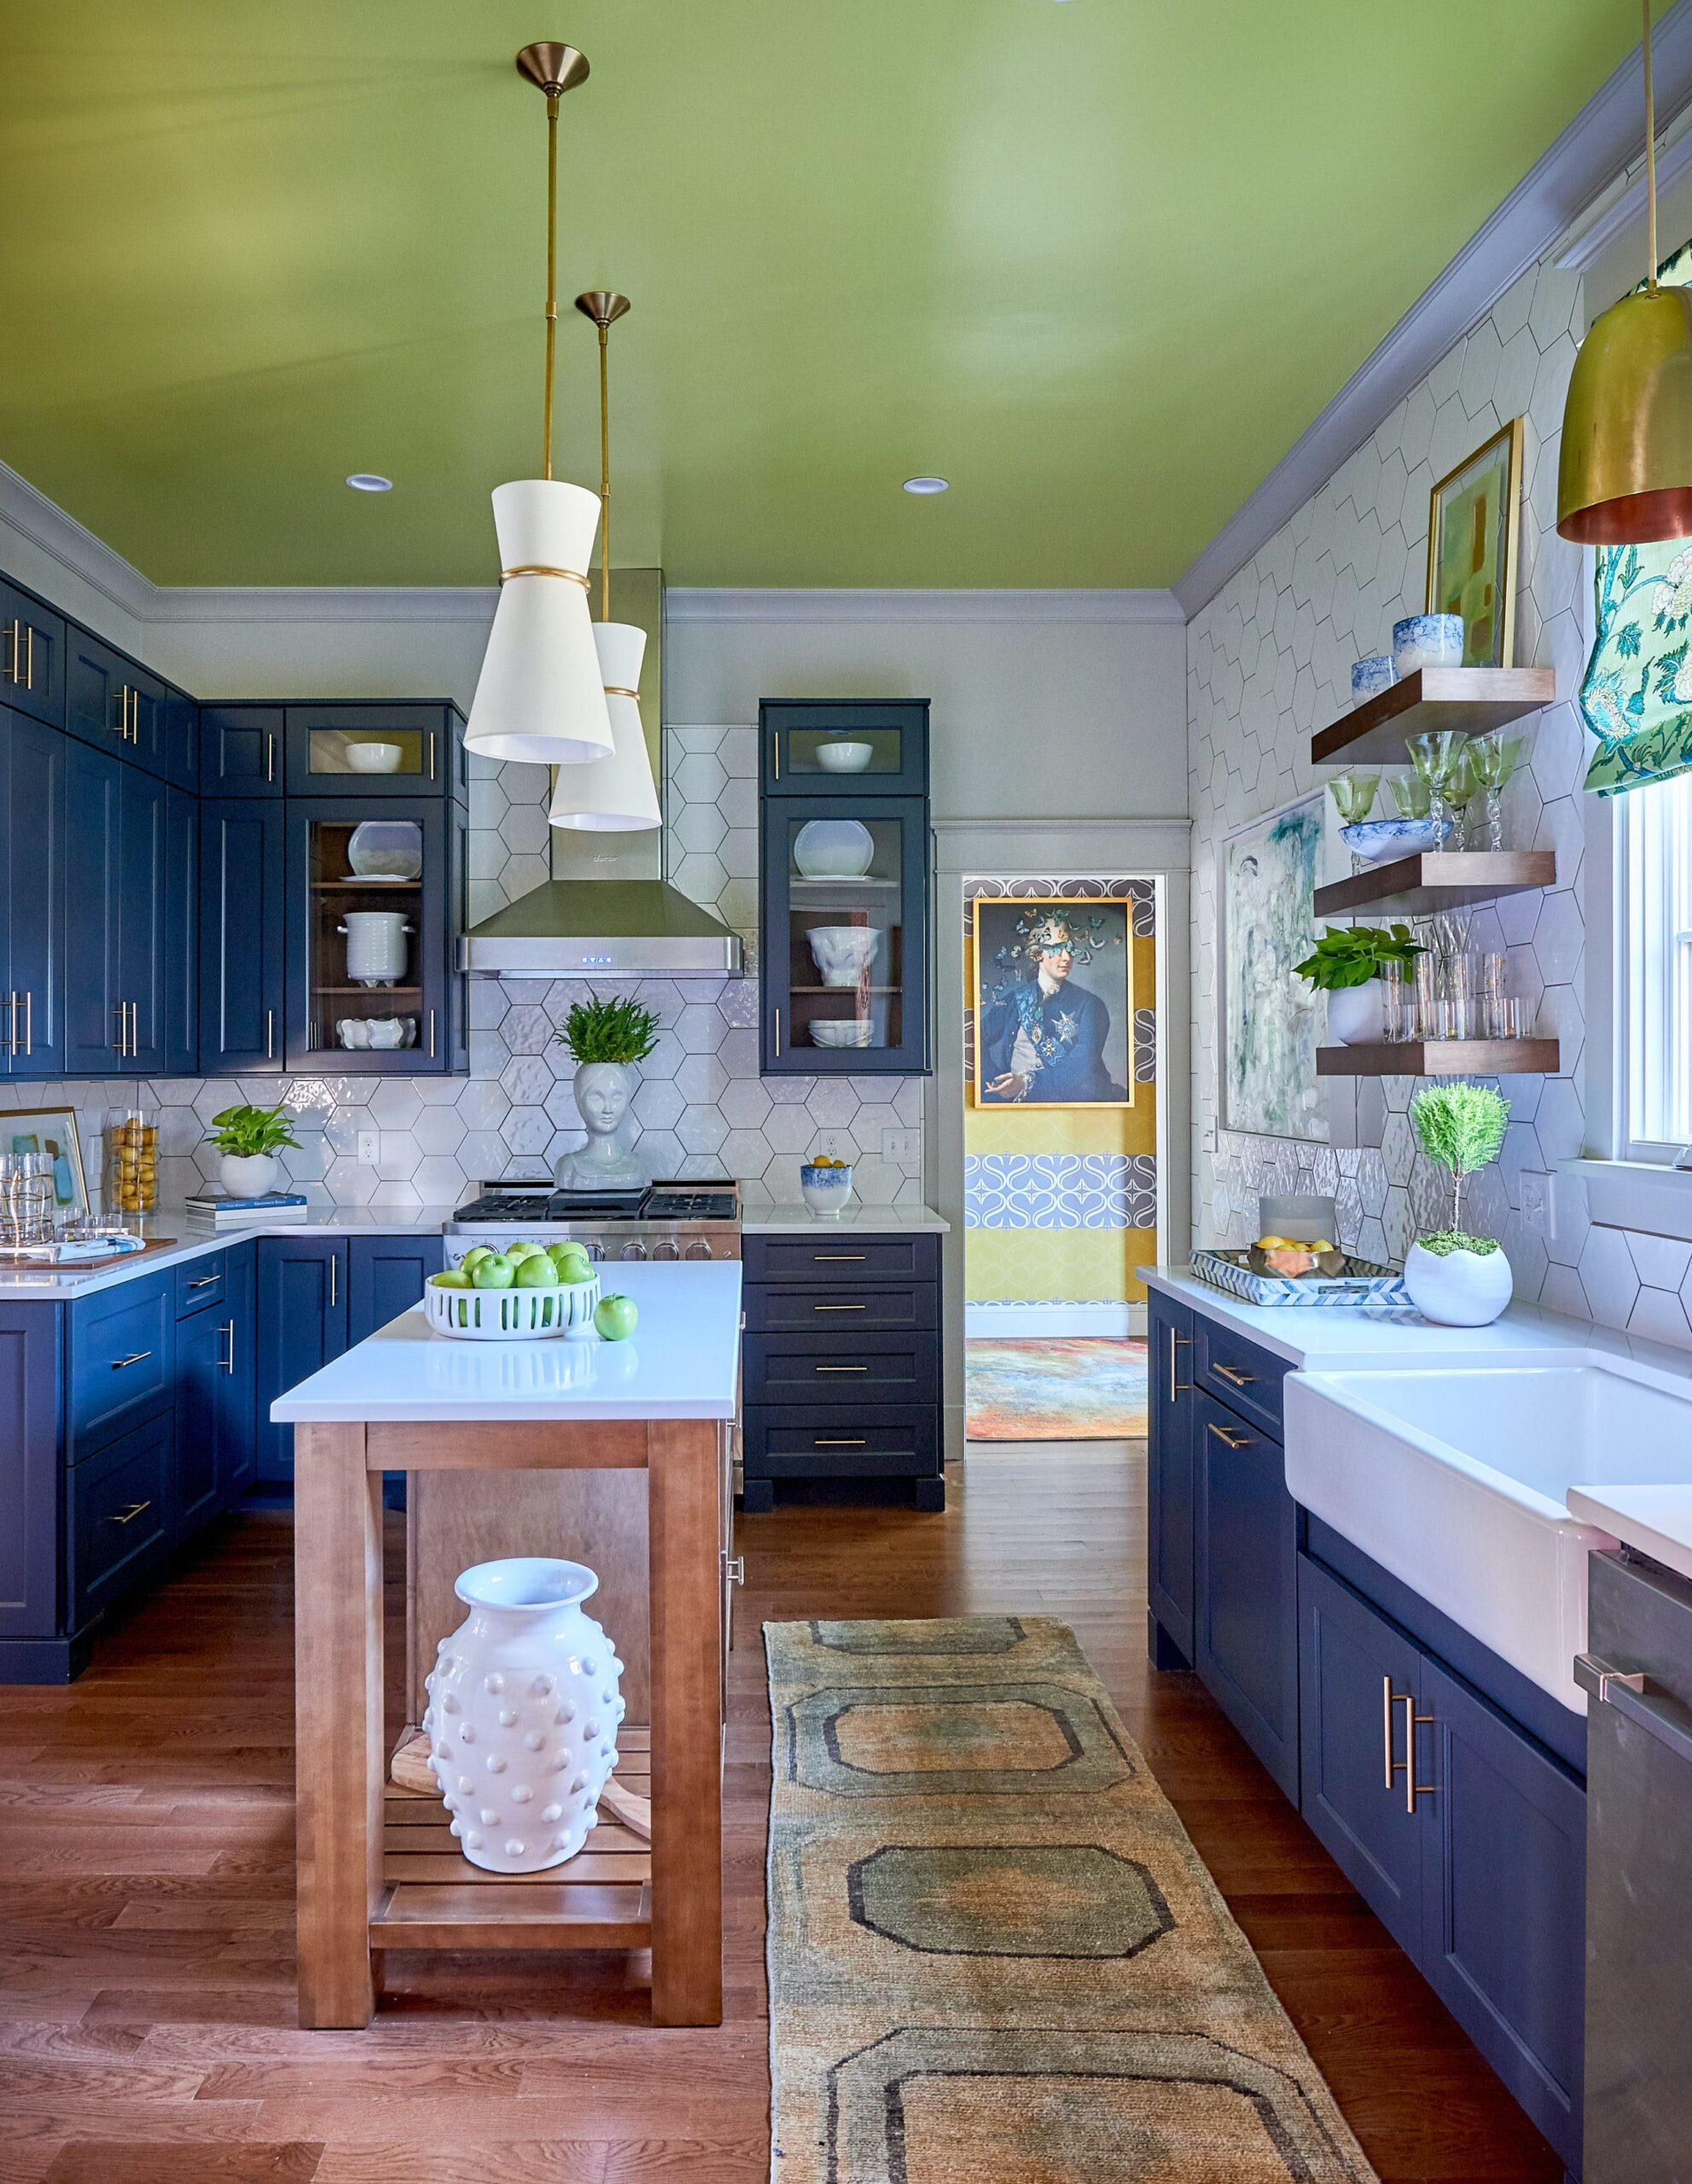 Image of sho191017 345 1 scaled in Cosentino Sponsors the 2019 Junior League of High Point Designers' Showhouse - Cosentino